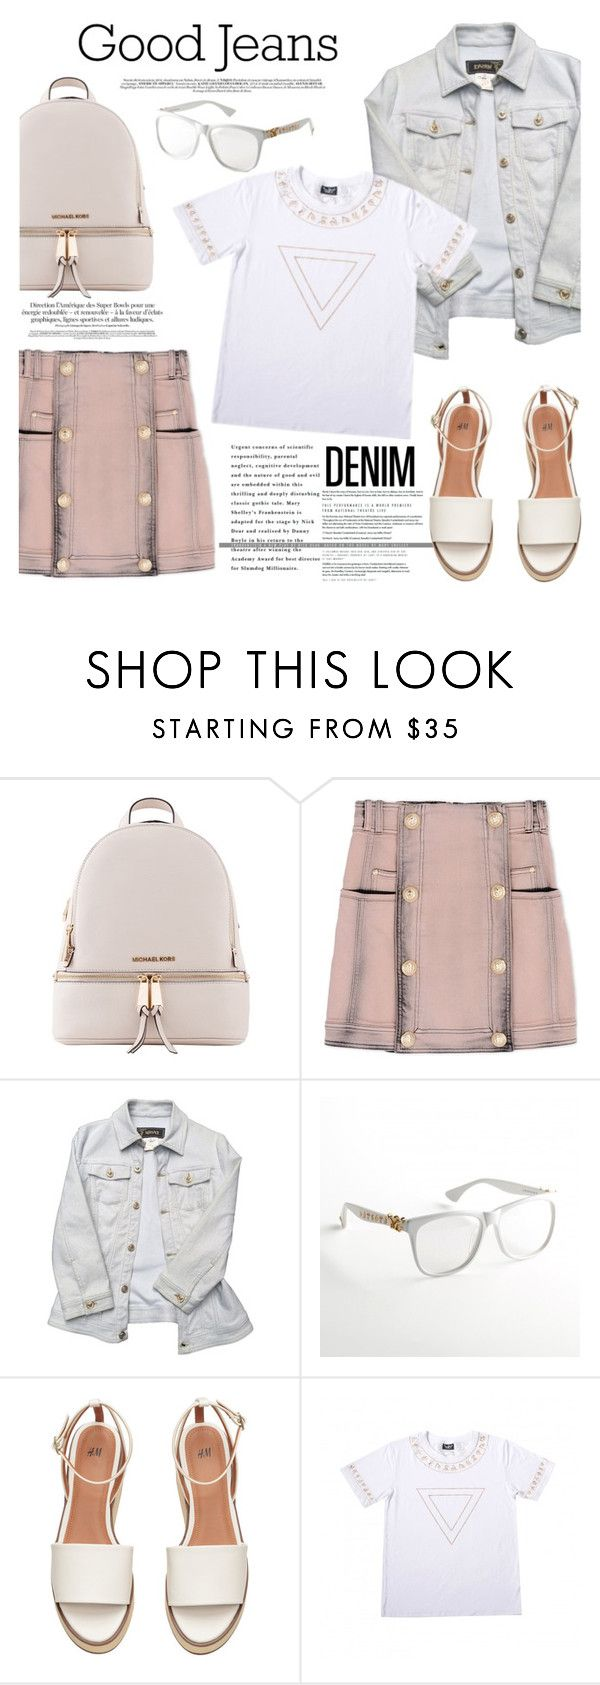 """Double Down on Denim"" by wigicollection ❤ liked on Polyvore featuring Michael Kors, Balmain, Versace, Denimondenim, contestentry, wigicollection, wigier and wigimoda"